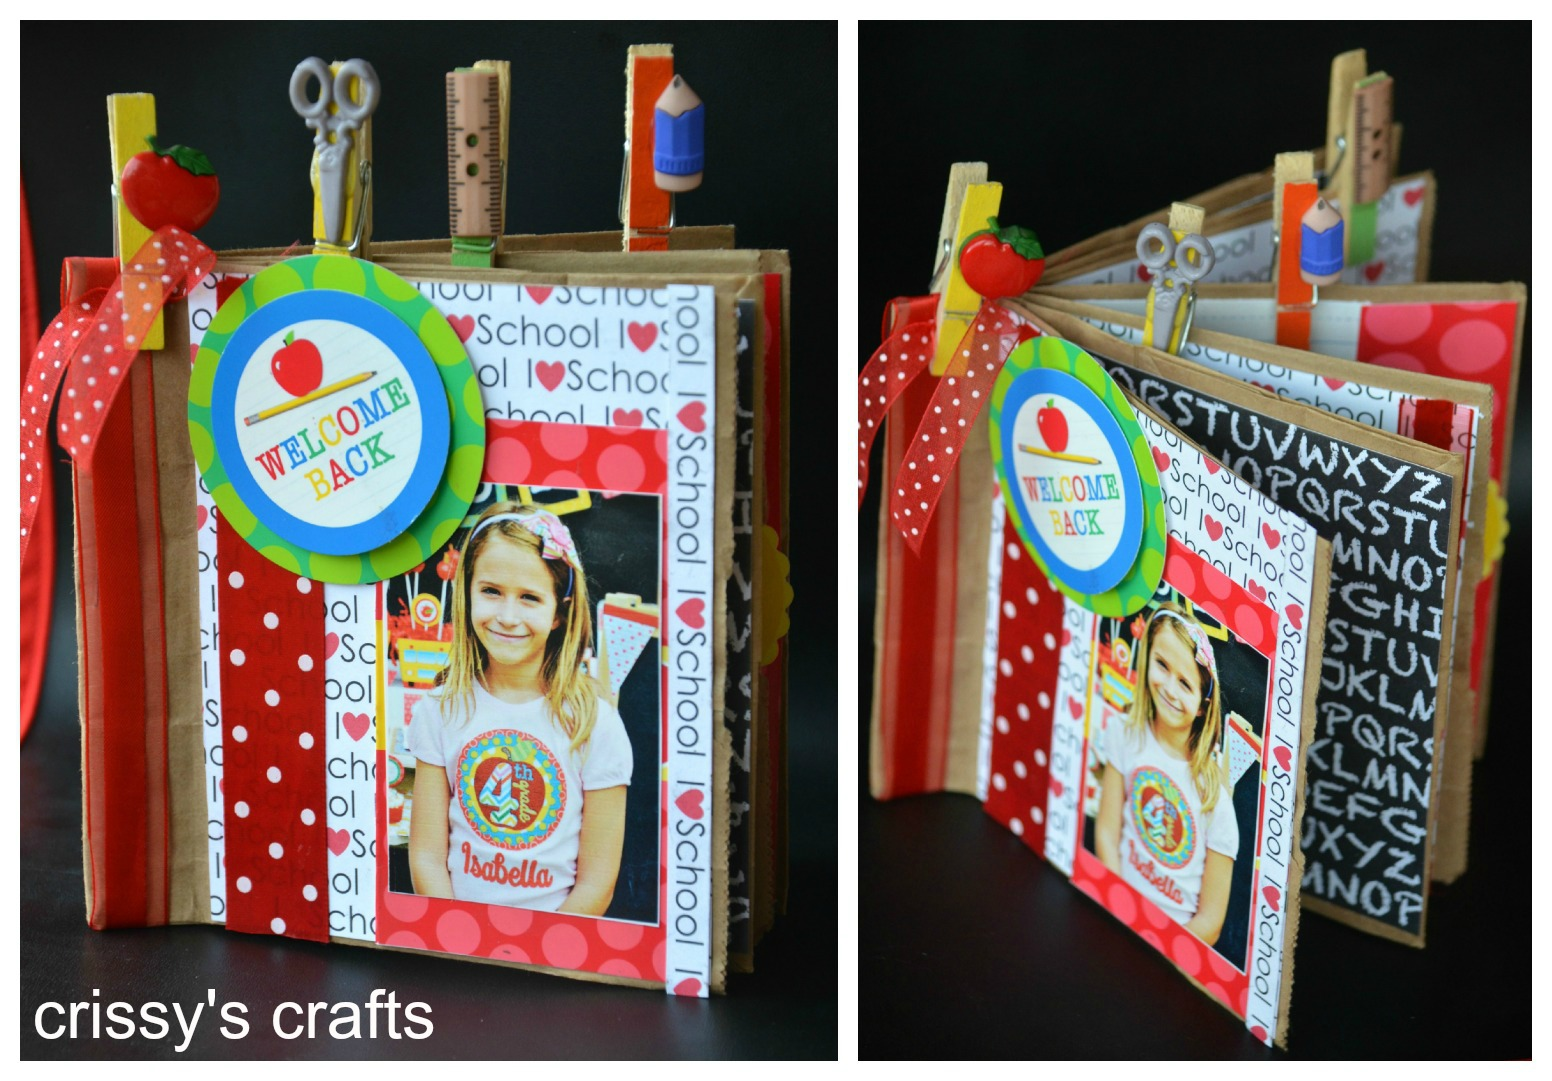 How to scrapbook materials - Please If You Like It Re Pin The My Mini Scrapbook From The Official Board Here The Submission That Has The Most Re Pins By Friday September 14 Wins